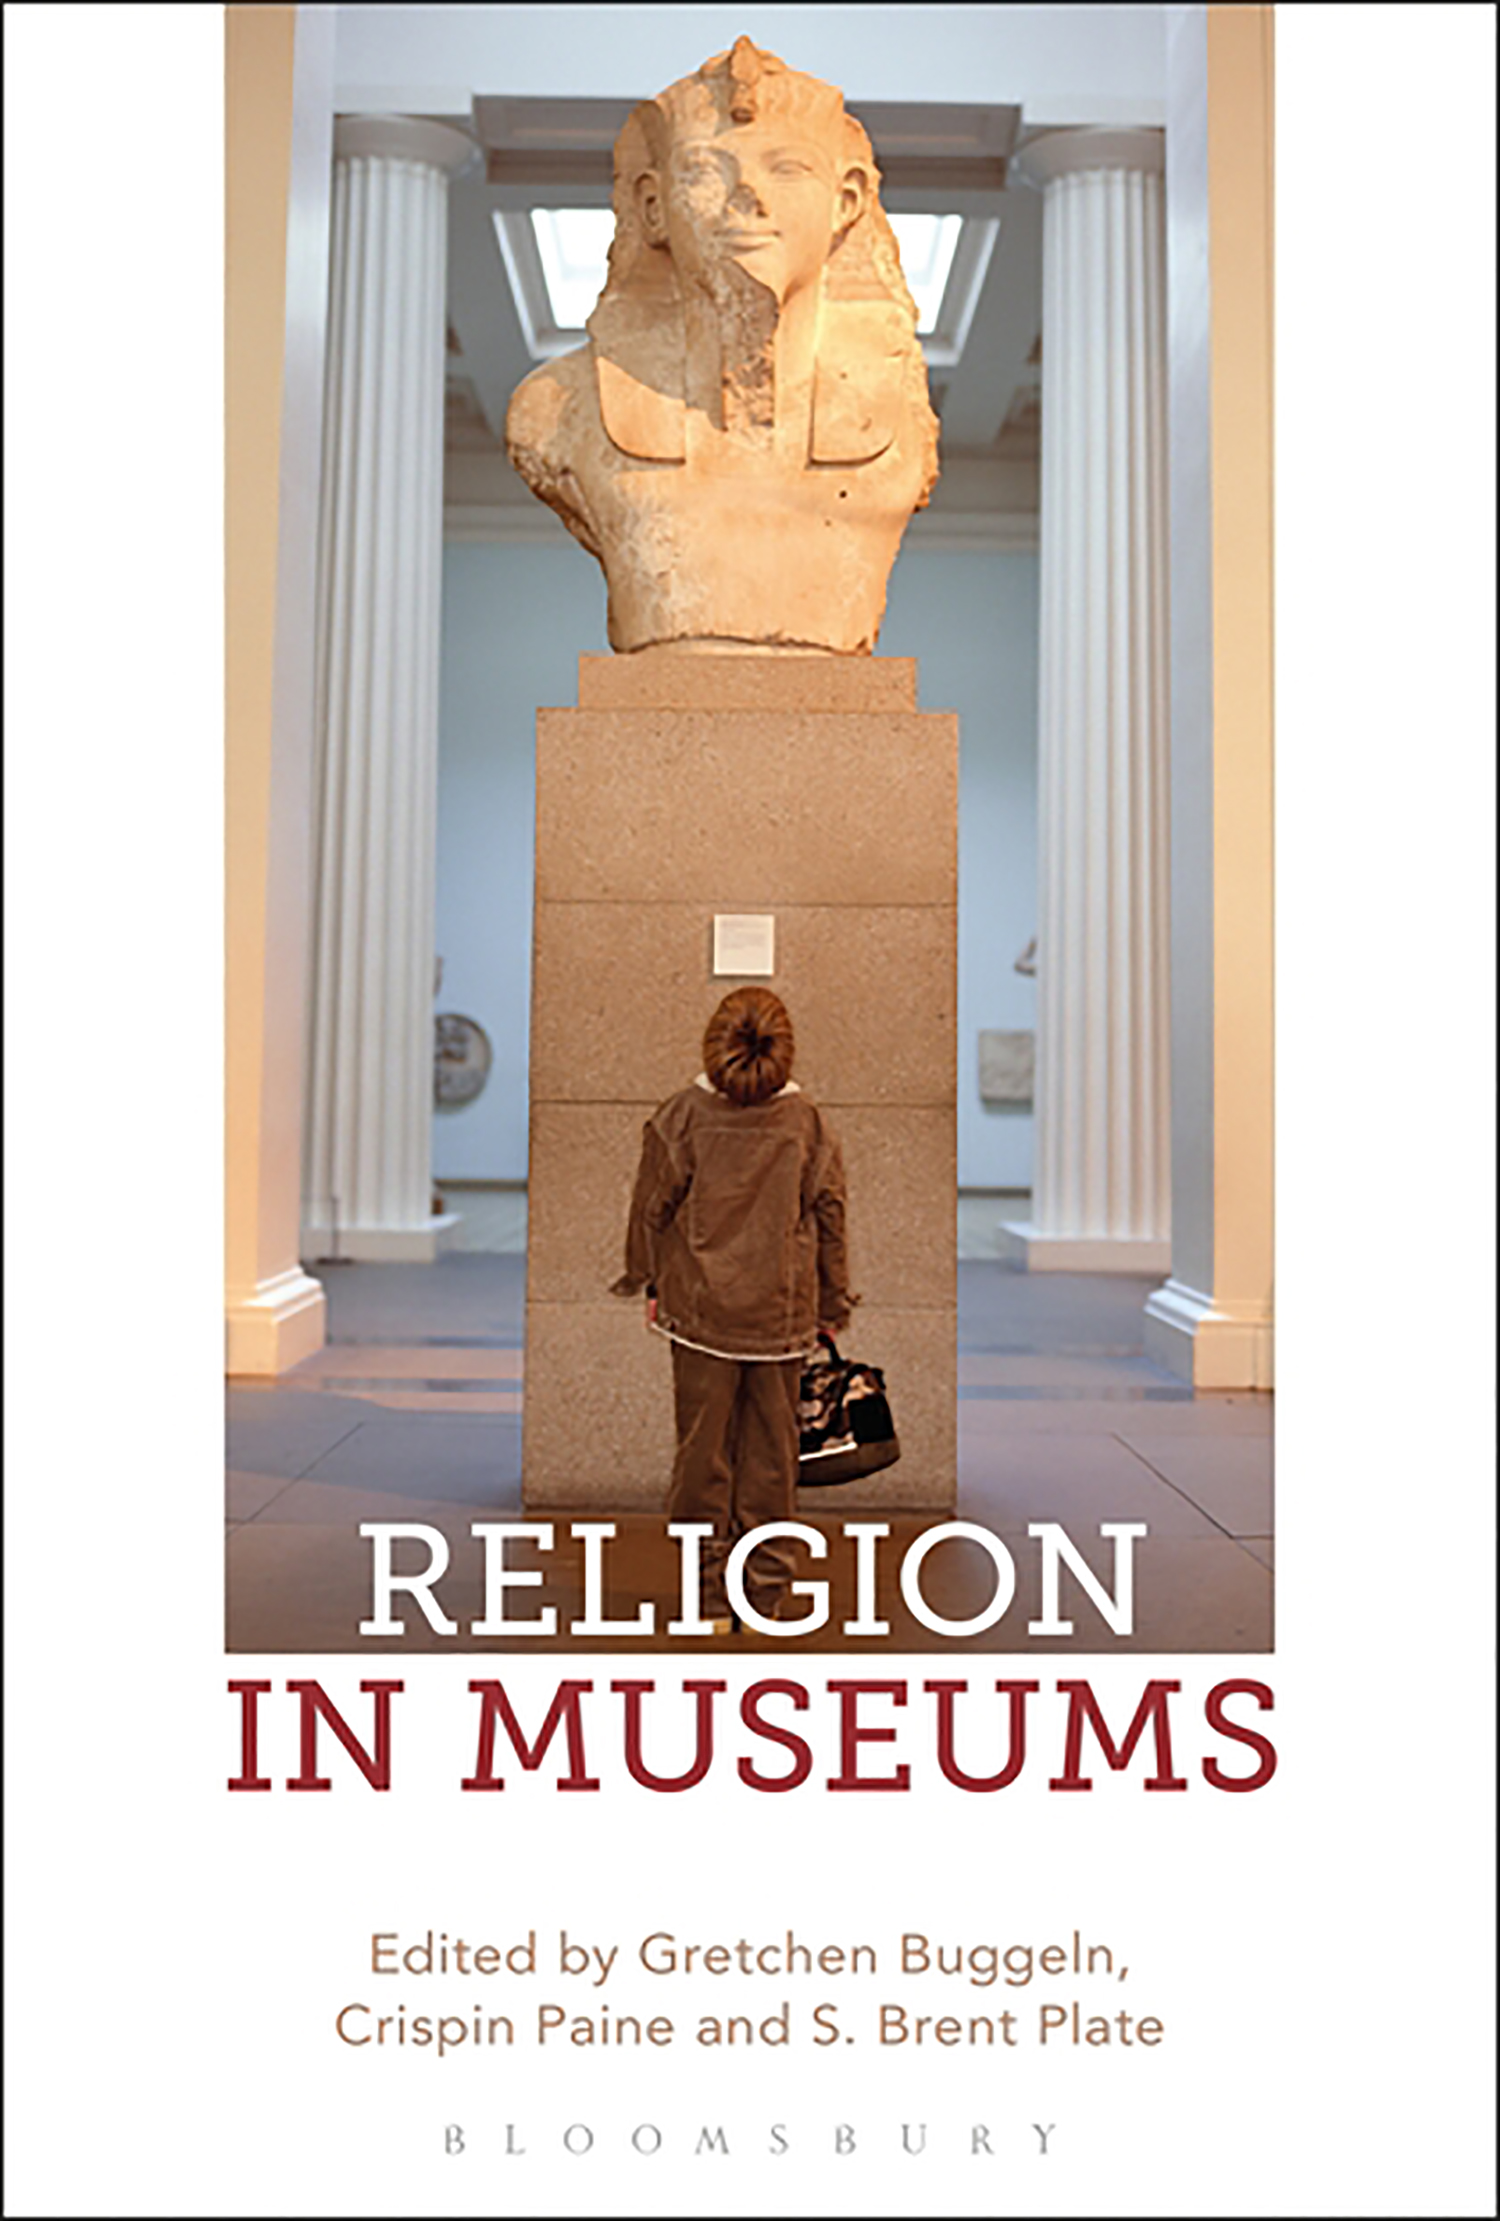 "Religion in Museums: Global and Interdisciplinary Perspectives   is divided into six sections: ""Museum Buildings""; ""Objects, Museums, Religions""; ""Responses to Objects, Museums, and Religions""; ""Museum Collecting and Research""; ""Museum Interpretation of Religion and Religious Objects""; and ""Presenting Religion in a Variety of Museums."" According to Marcia Brennan, Professor of Art History and Religion at Rice University, ""This project engages the fascinating—and culturally important—conjunction of the subjects of museums and religion. The book has the potential to address and shape the future of this interdisciplinary discourse through an intriguing conjunction of cultural, scholarly, and curatorial perspectives."""